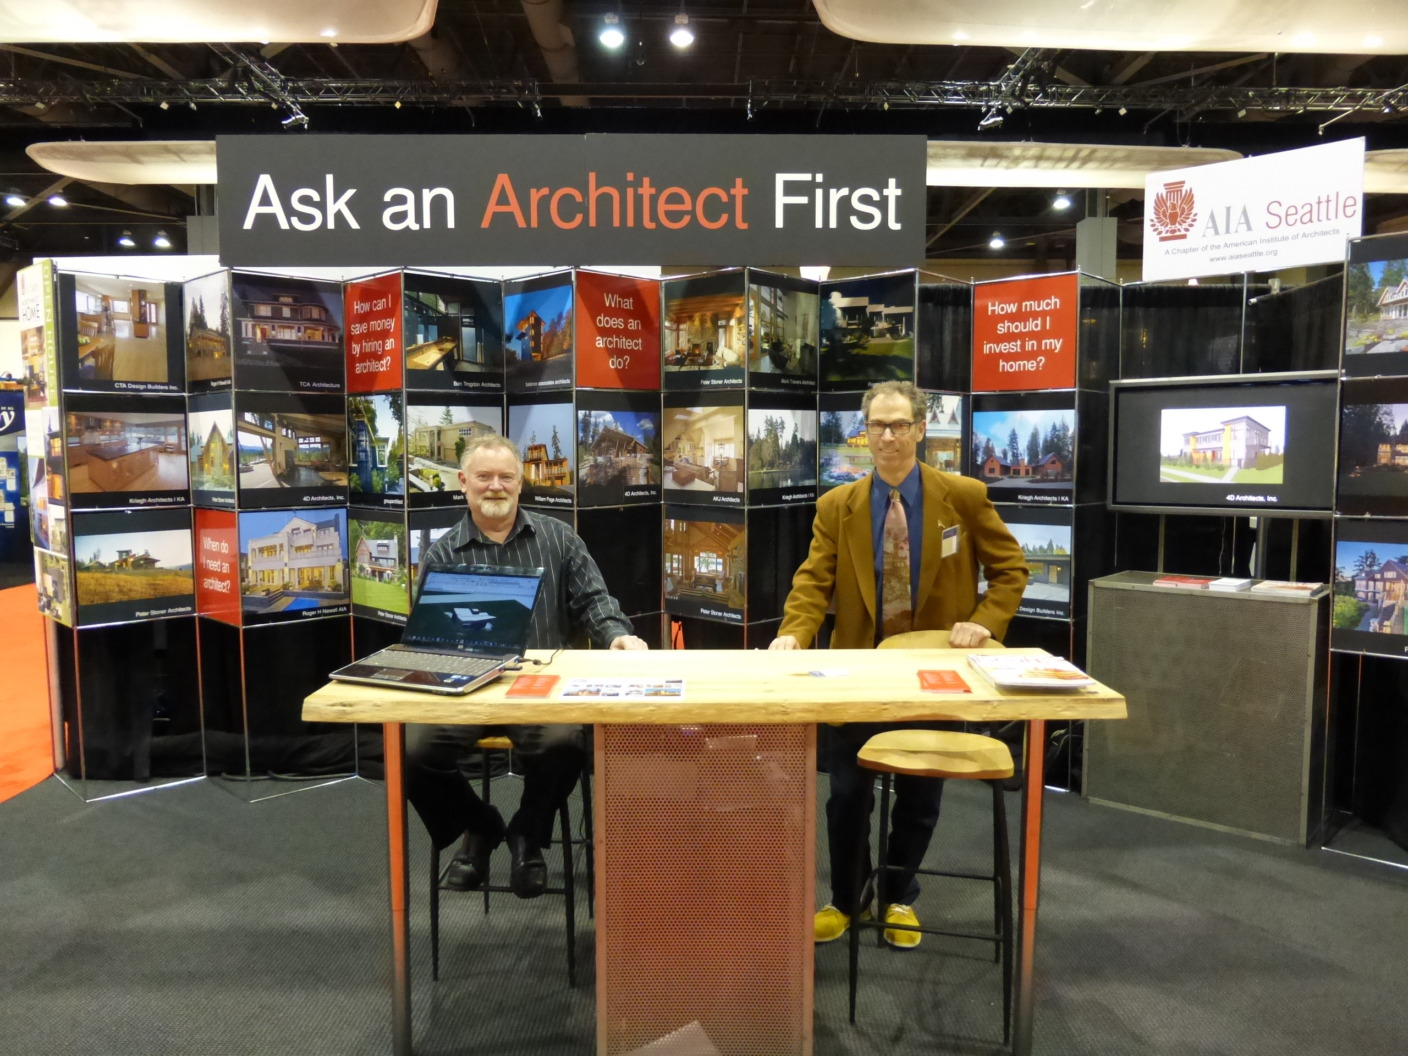 William Page and Joseph Mucci staff the 2014 AIA Seattle booth at the 2014 Home Show